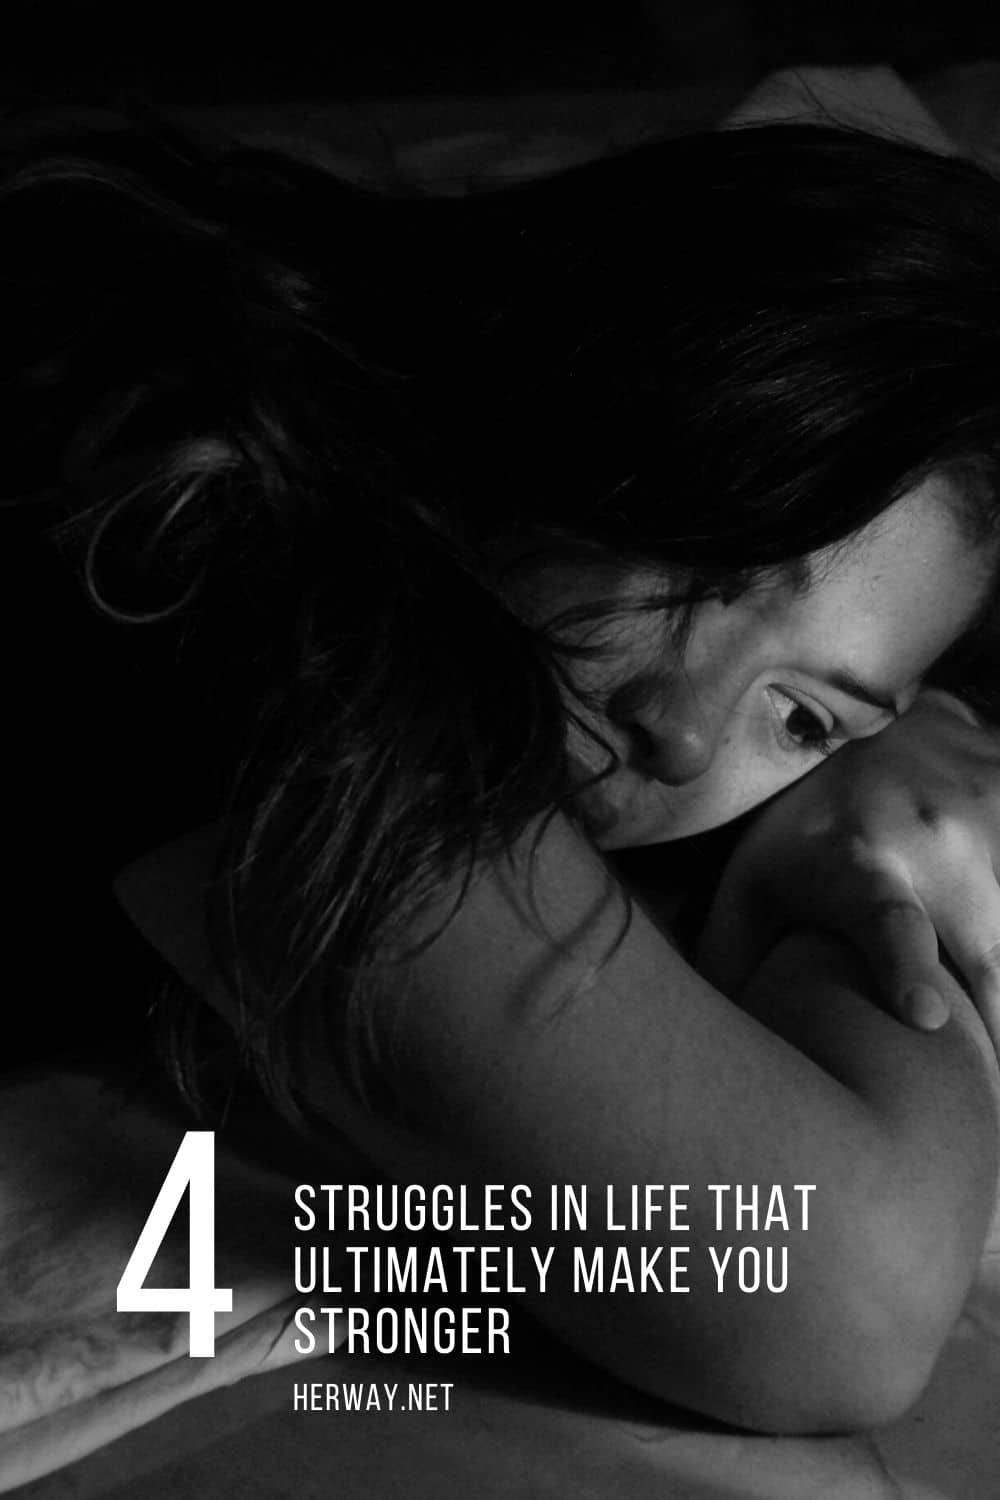 4 Struggles In Life That Ultimately Make You Stronger